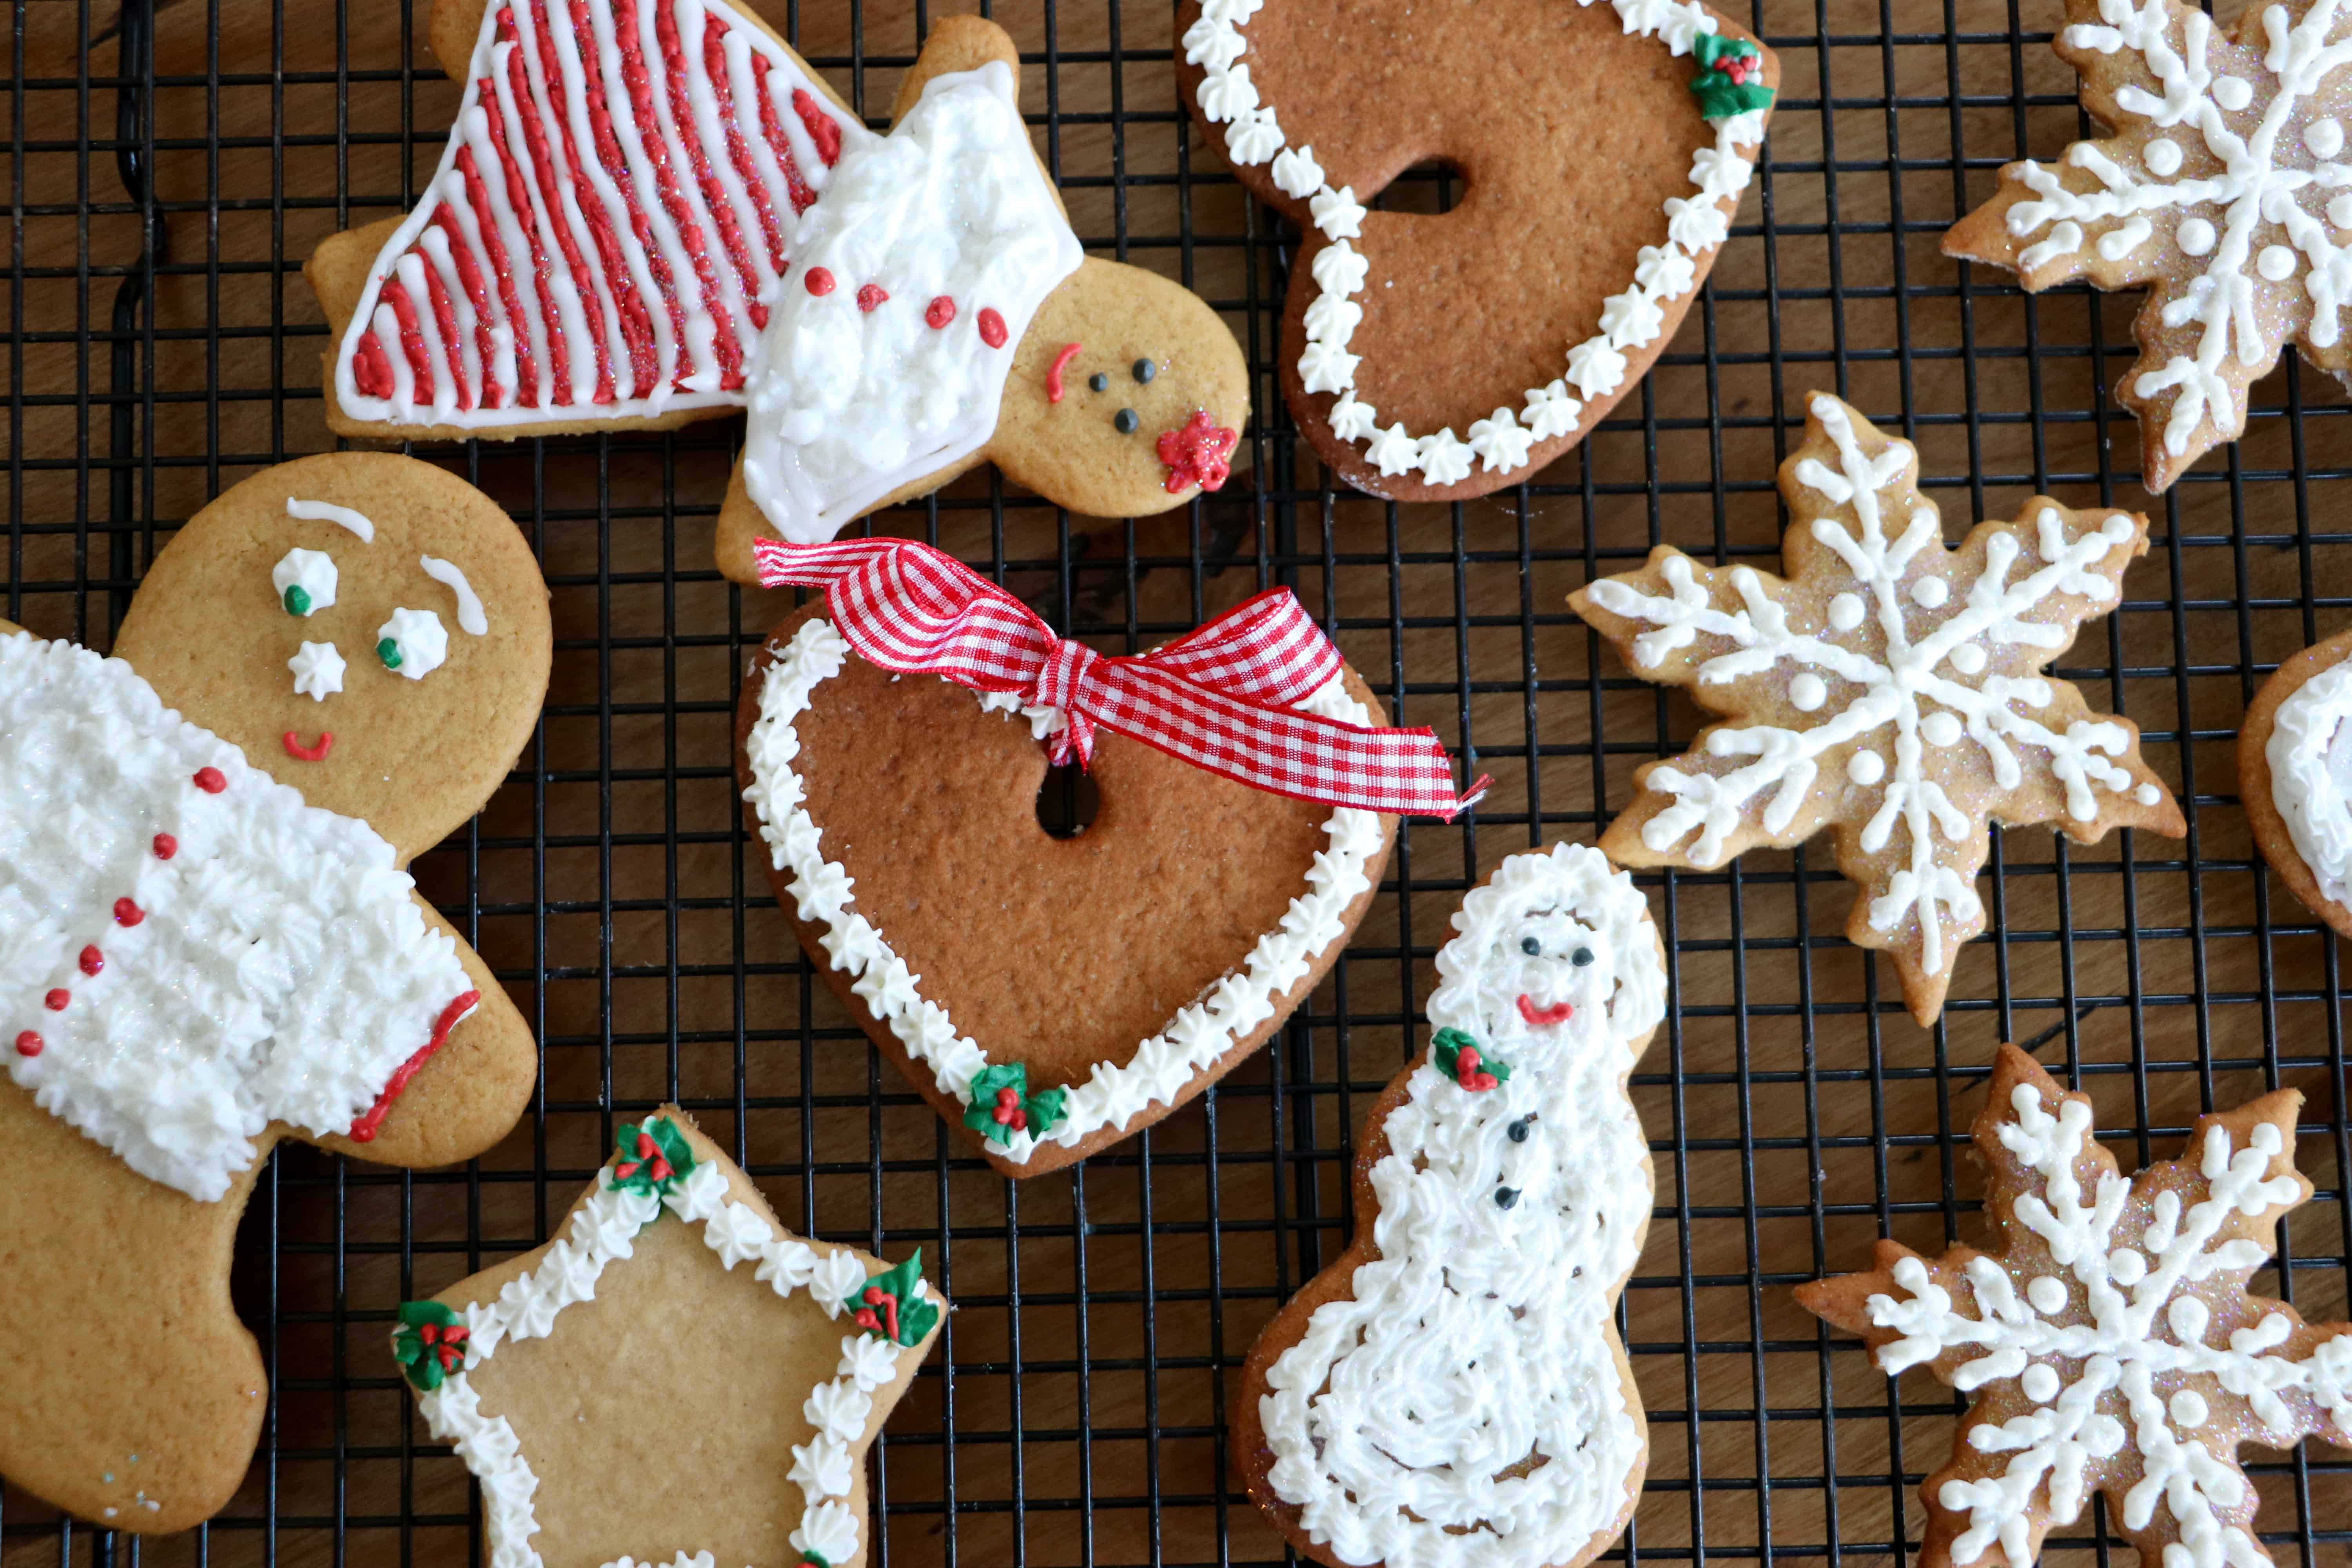 Holiday Cut-Out Crispy Cookies